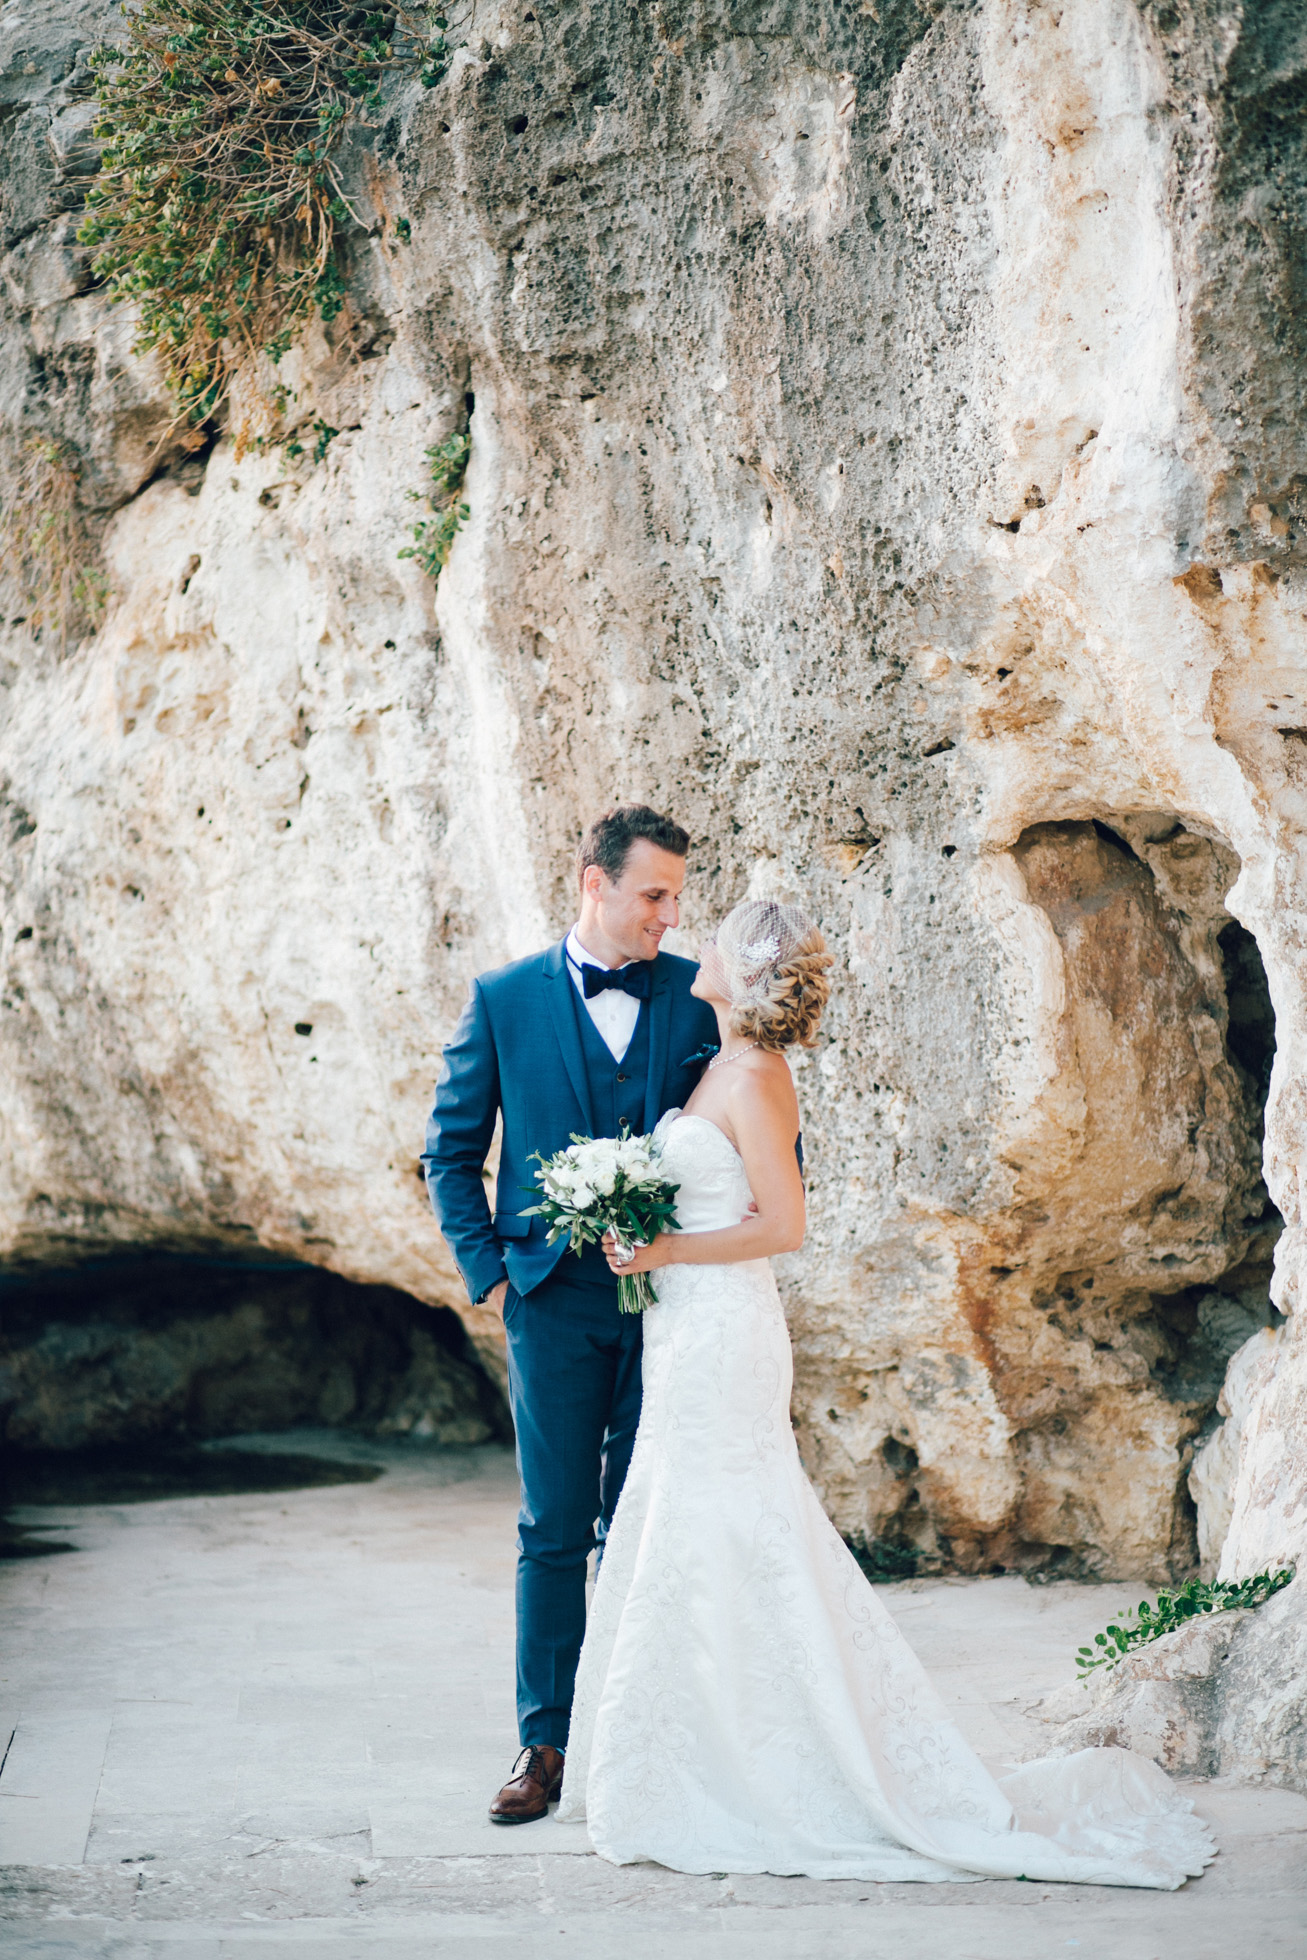 Just married! Elegant bride and groom posing for portraits on their destination wedding day in Crete island, Greece.